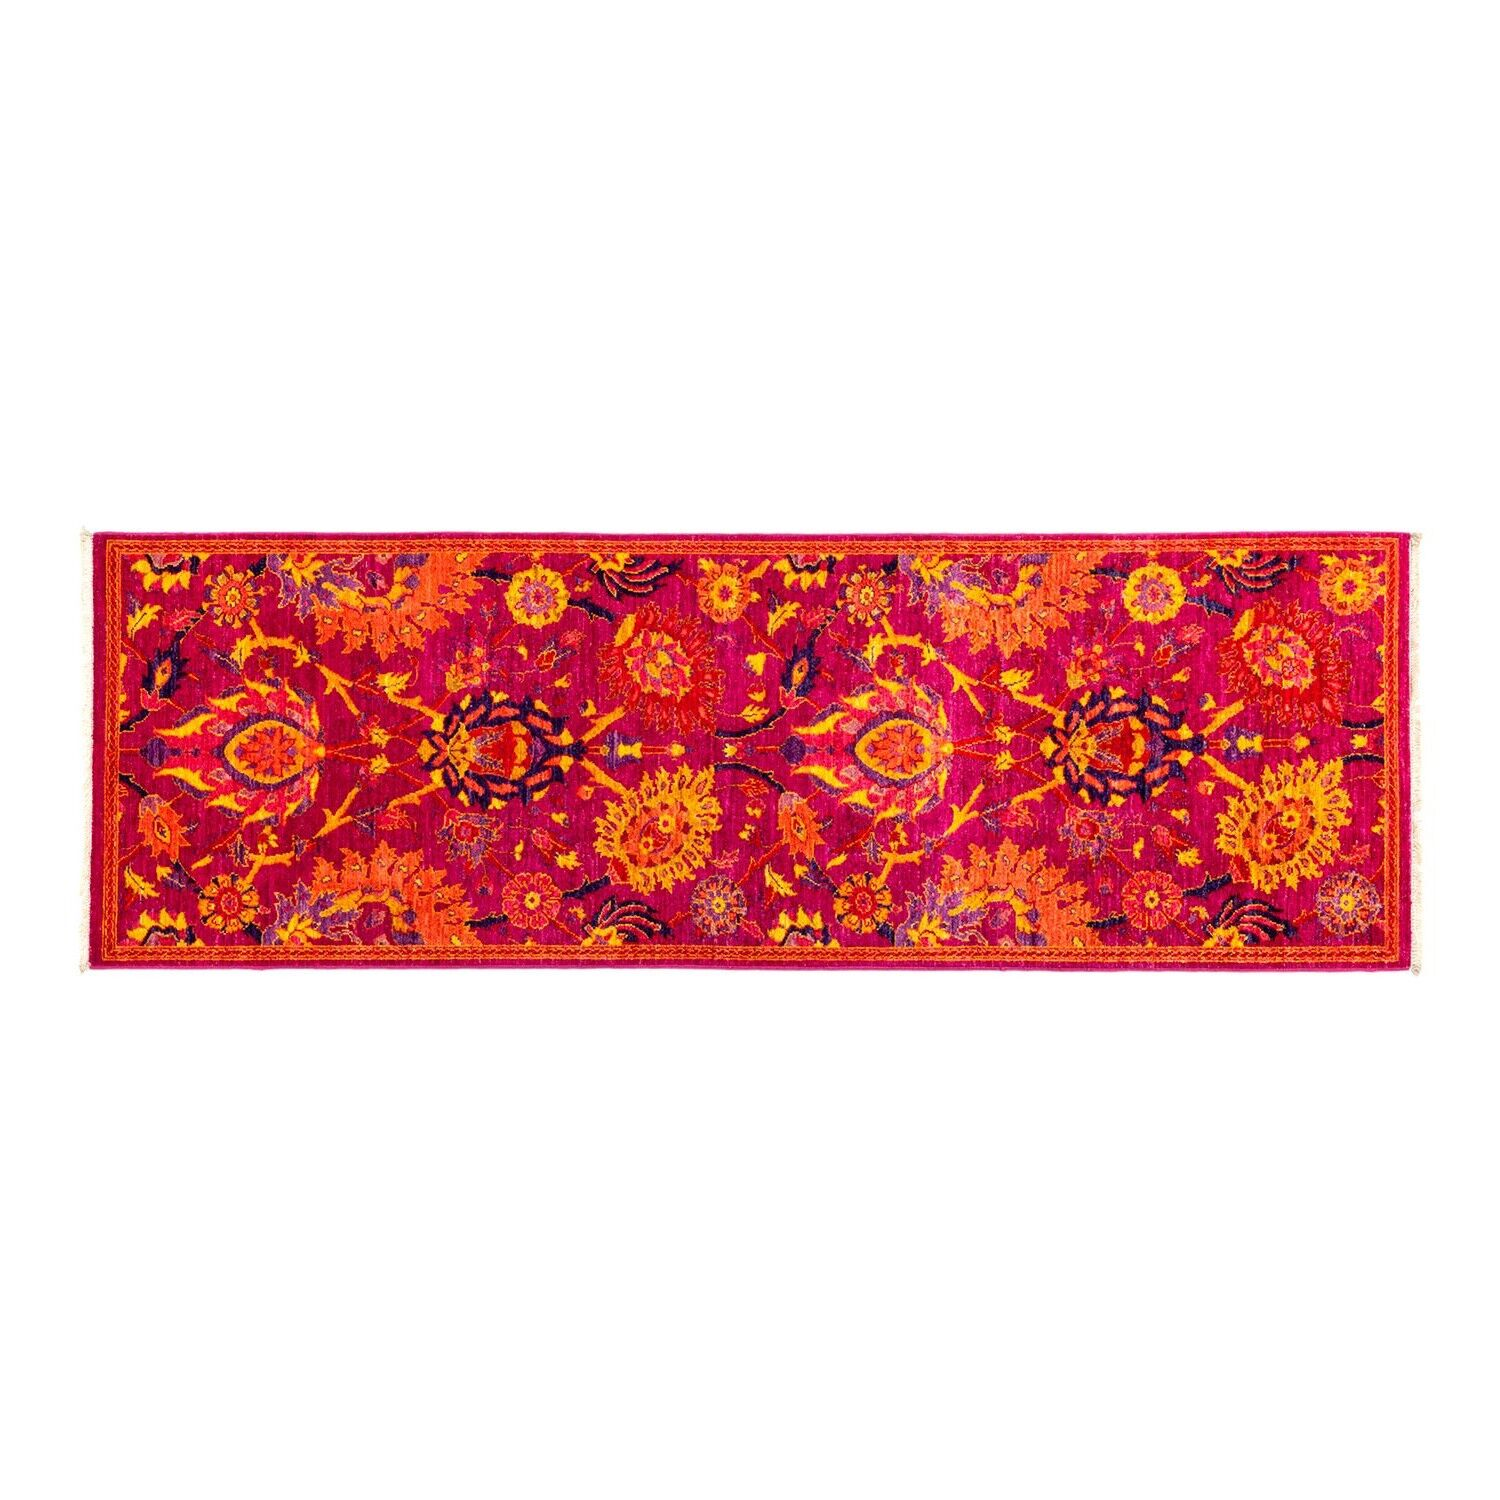 One-of-a-Kind Eclectic Vivid Hand-Knotted Pink Area Rug Rug Size: Runner 2'8